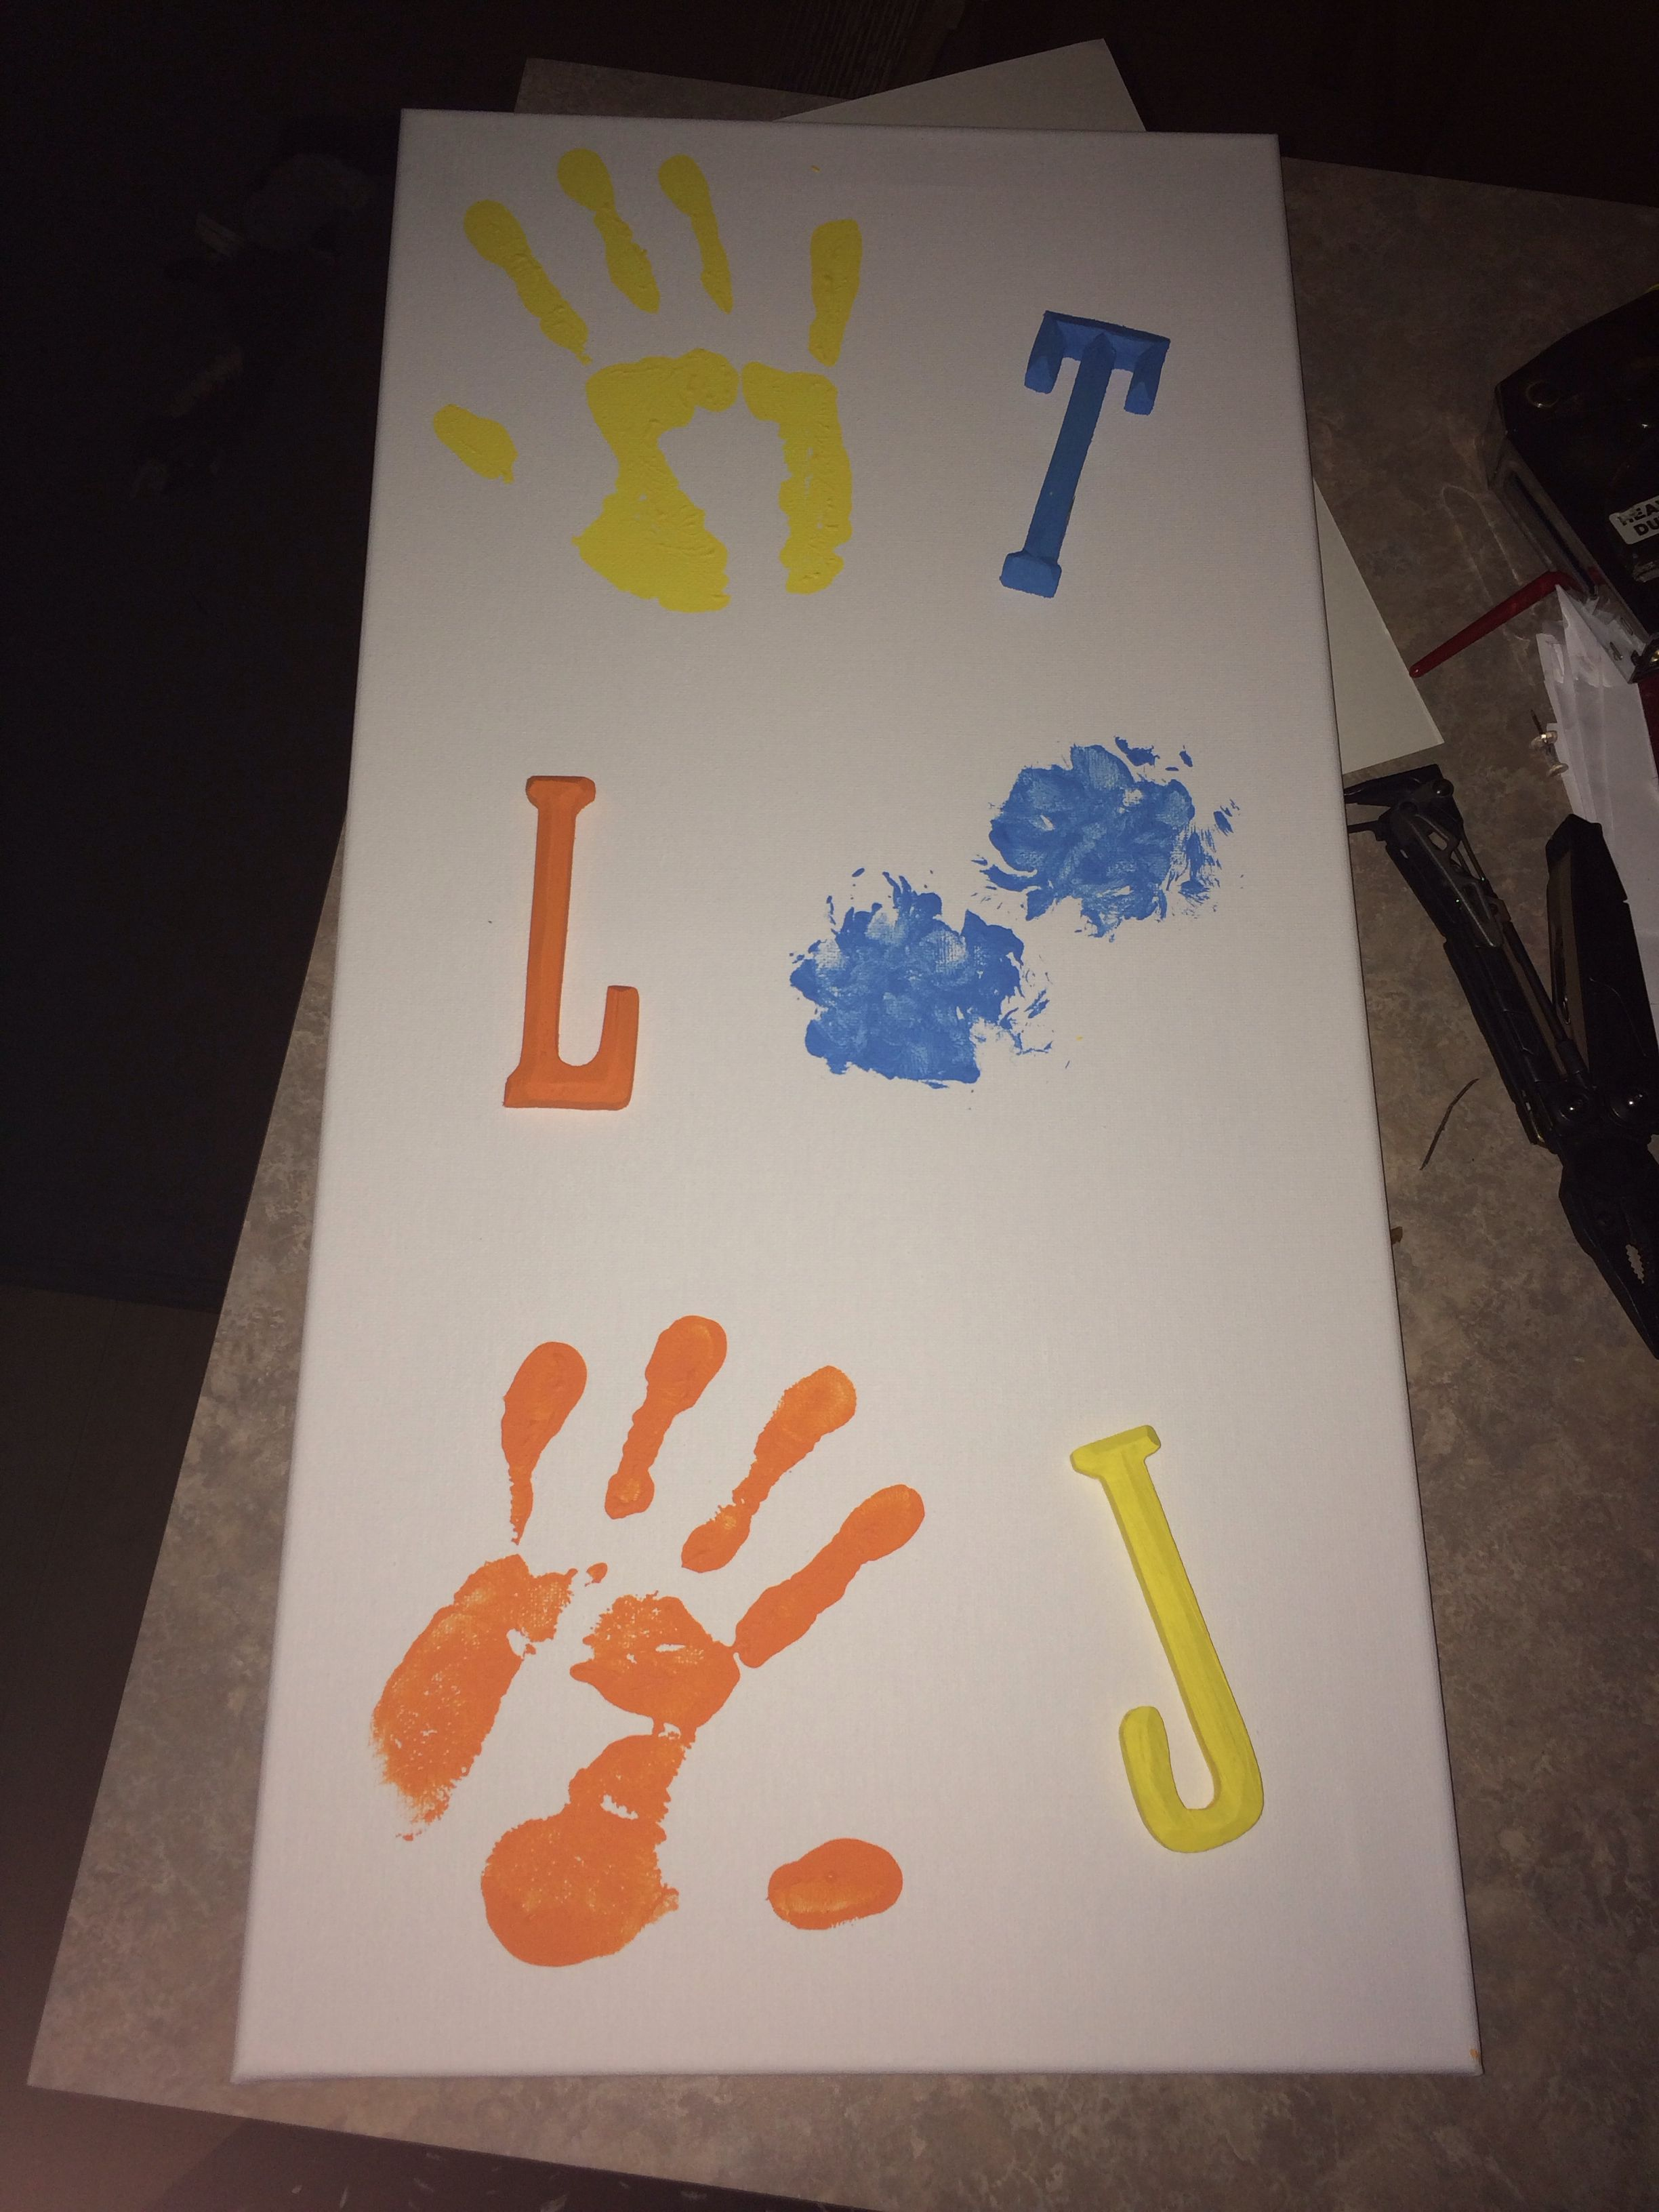 This is my hand and my husbands hand and our one year old puppy's paws. Made on canvas with acrylic paints. The wooden letters have been painted and glued to the canvas and symbolize our first initials.